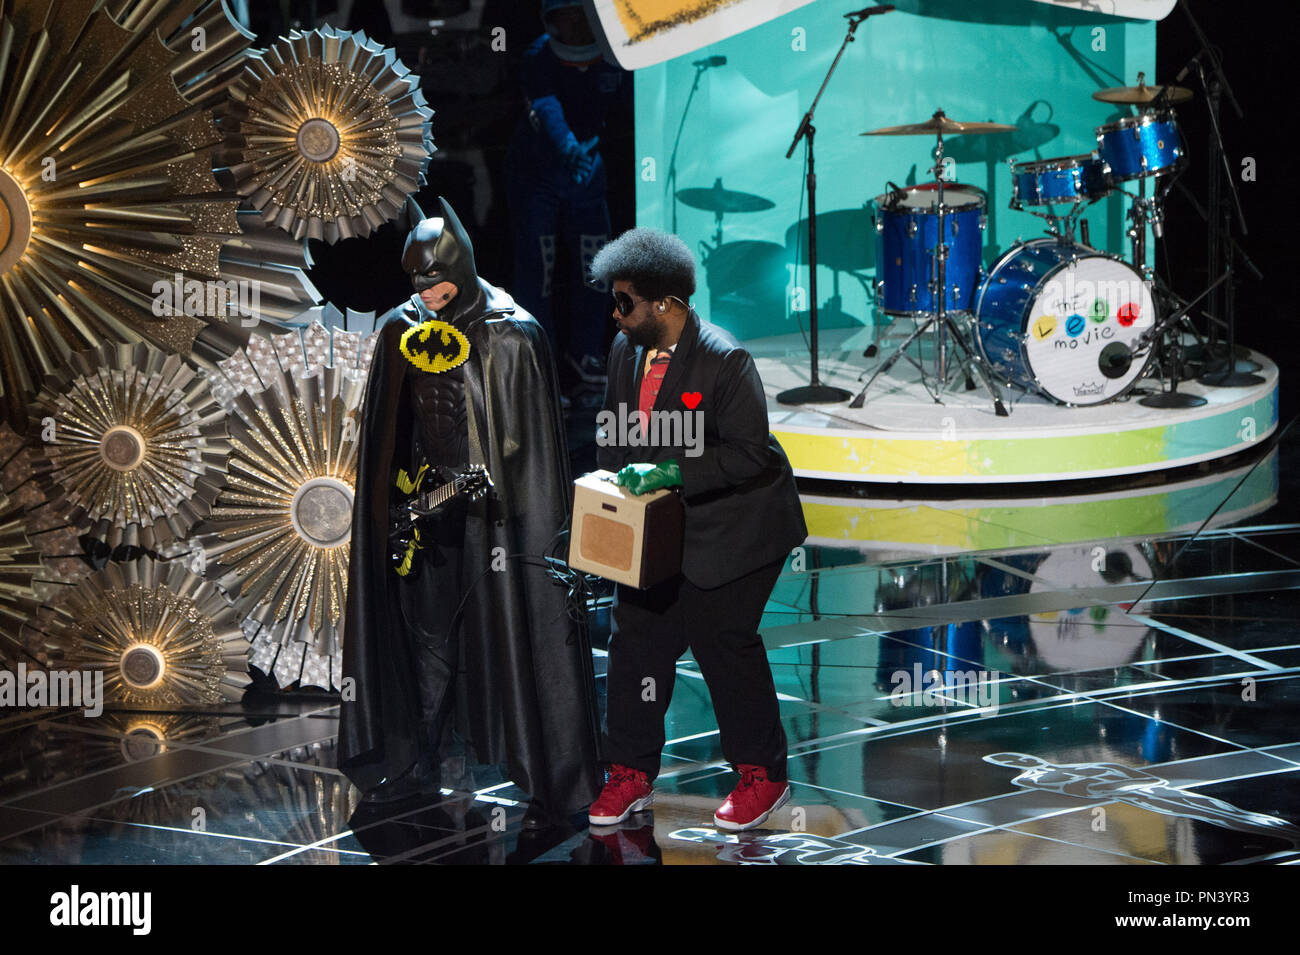 """The live performance of the Oscar® nominated Original Song,  """"Everything is Awesome"""" from the film 'The Lego Movie' during the live ABC Telecast of The 87th Oscars® at the Dolby® Theatre in Hollywood, CA on Sunday, February 22, 2015.  File Reference # 32567_119THA  For Editorial Use Only -  All Rights Reserved - Stock Image"""